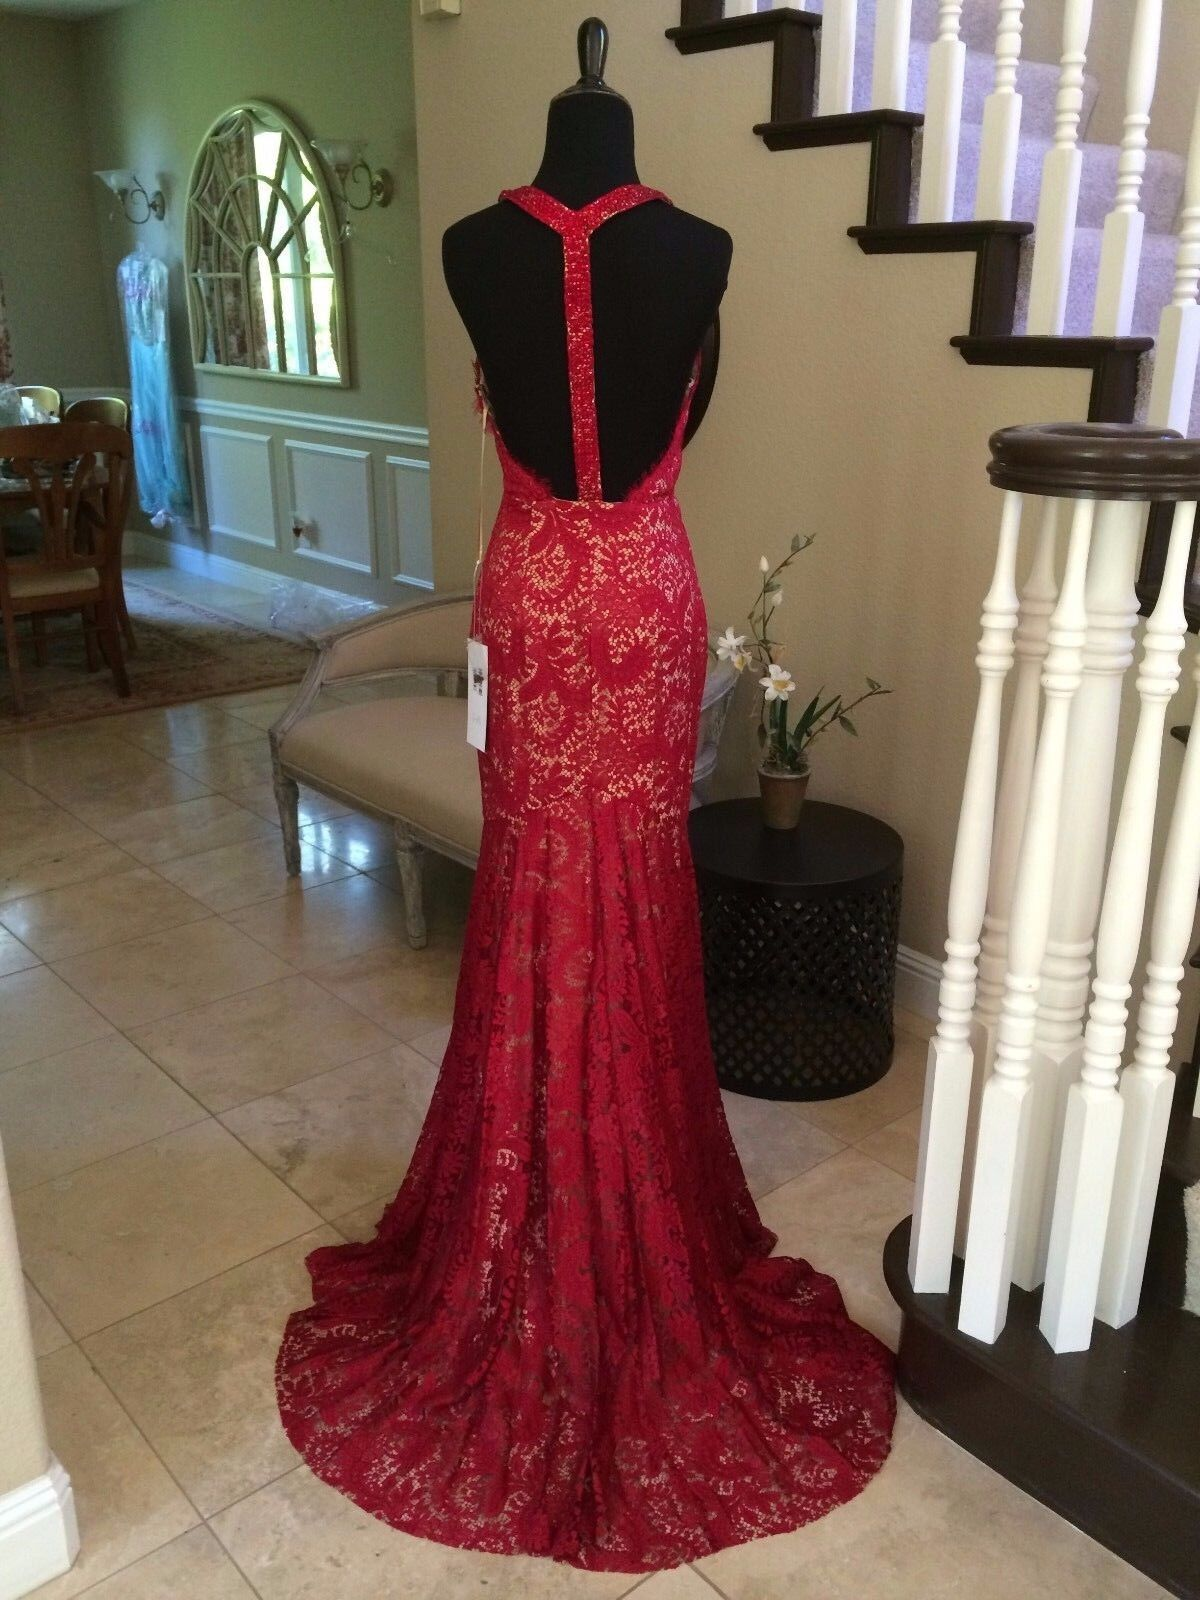 1c7fb603df2 830 NWT RUBY TRUMPET LACE JOVANI PROM PAGEANT FORMAL DRESS GOWN SIZE 6